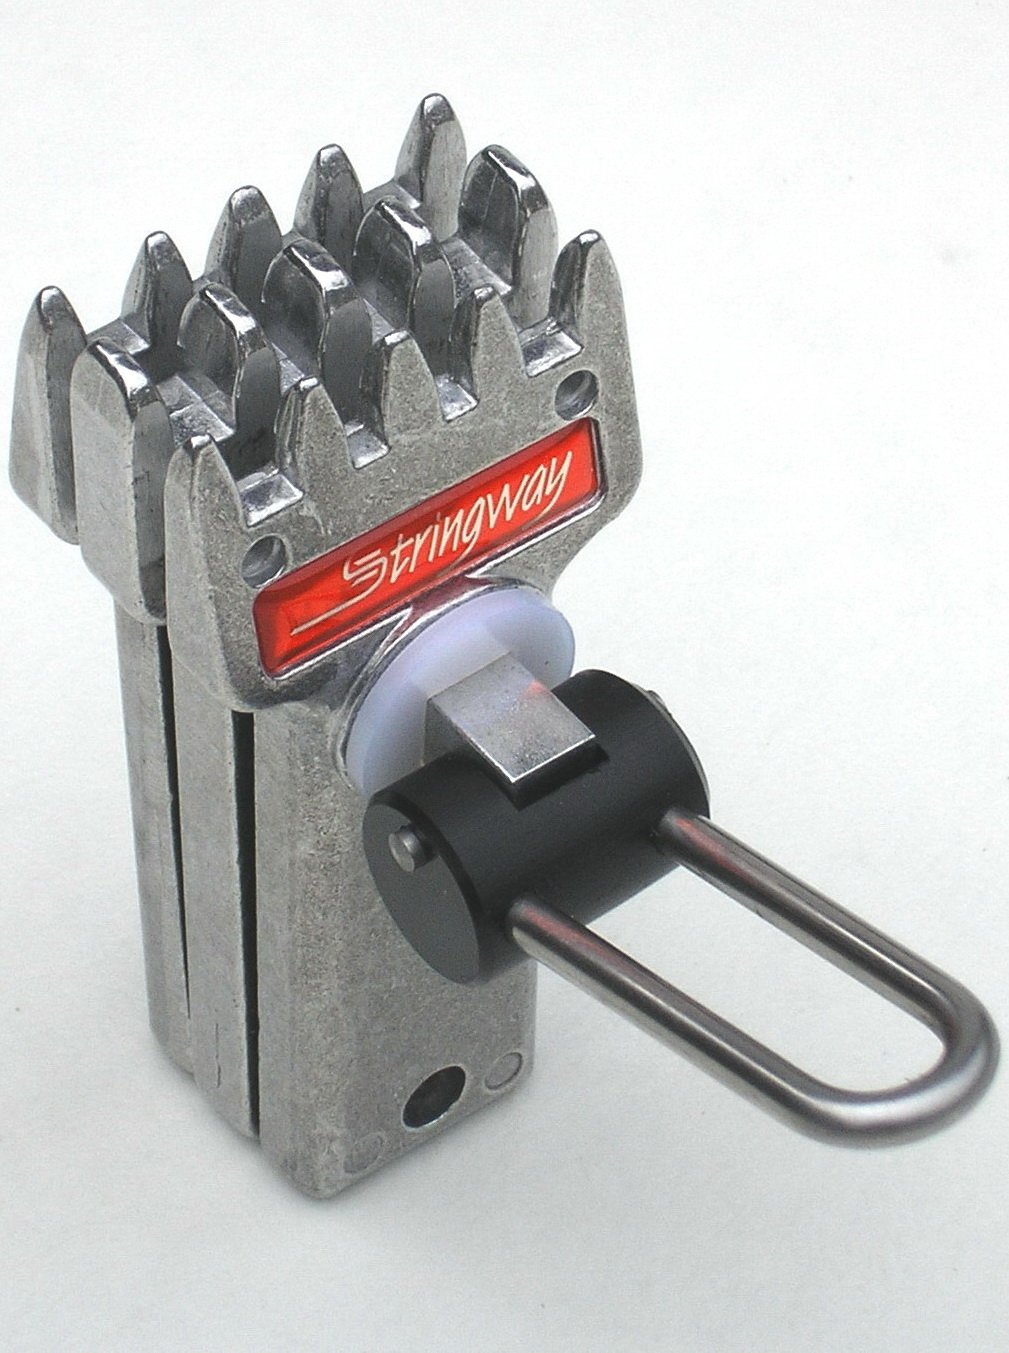 Stringway Double Flying Clamp, Made in Netherlands, Best in the Trade!